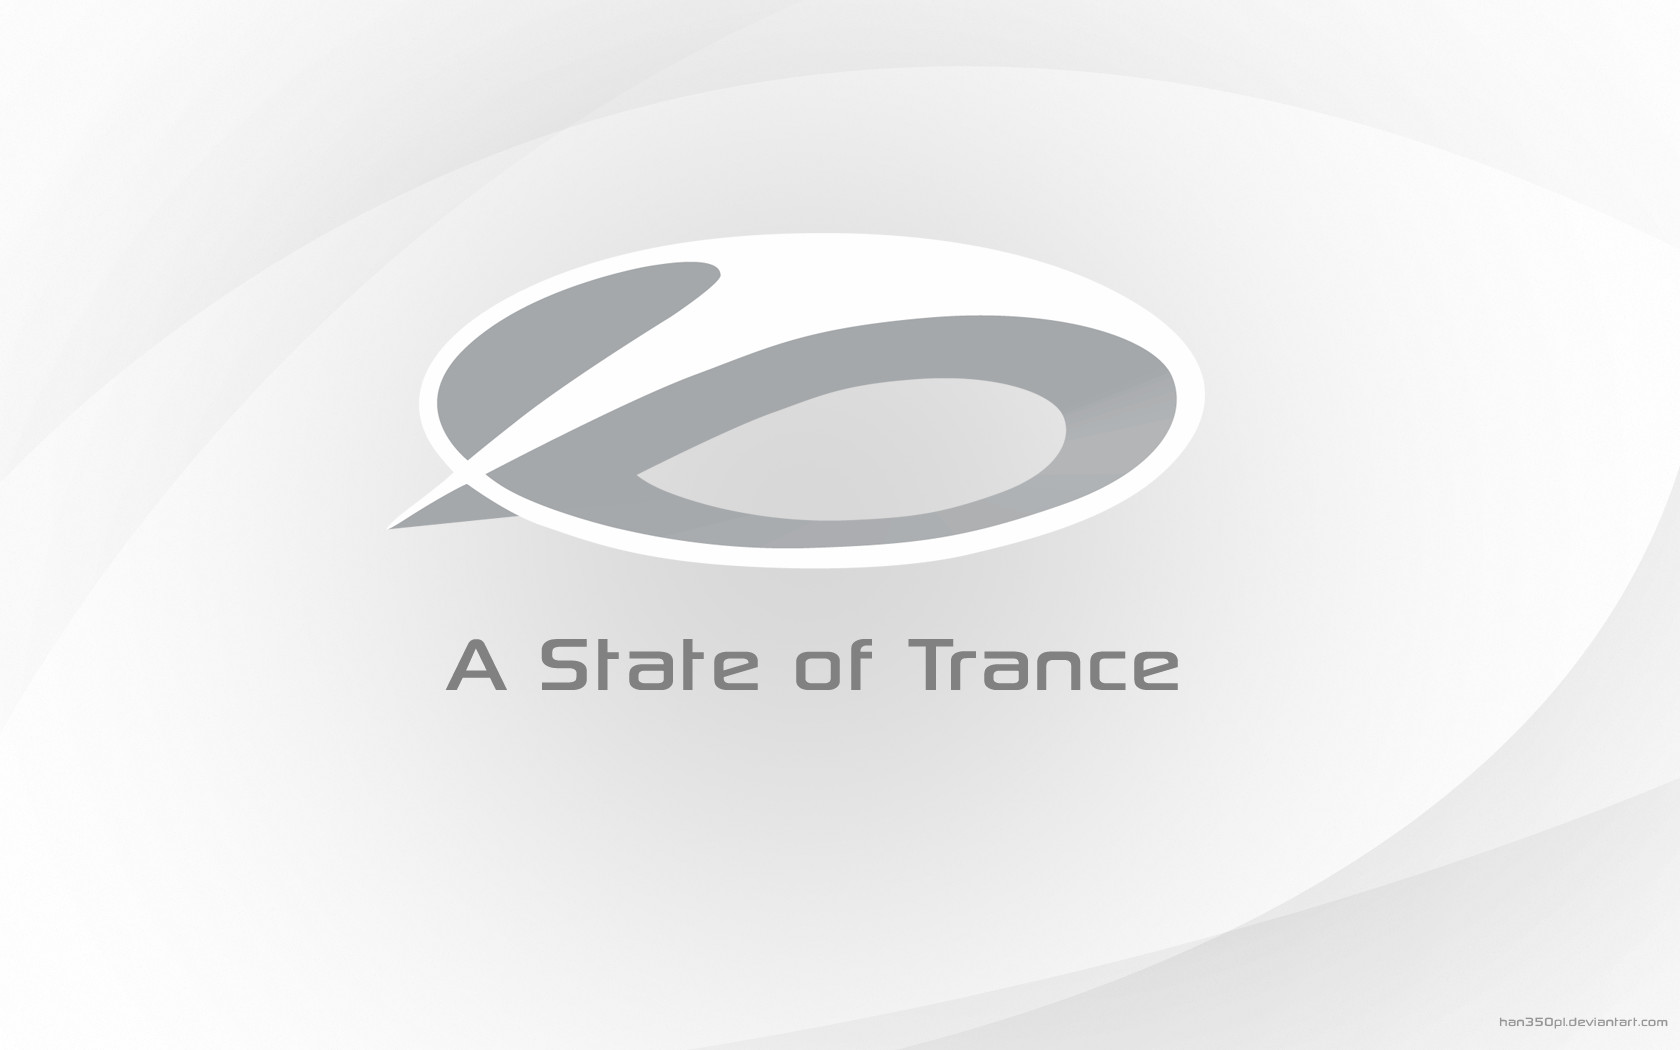 A State Of Trance Wallpaper by han350pl 1680x1050